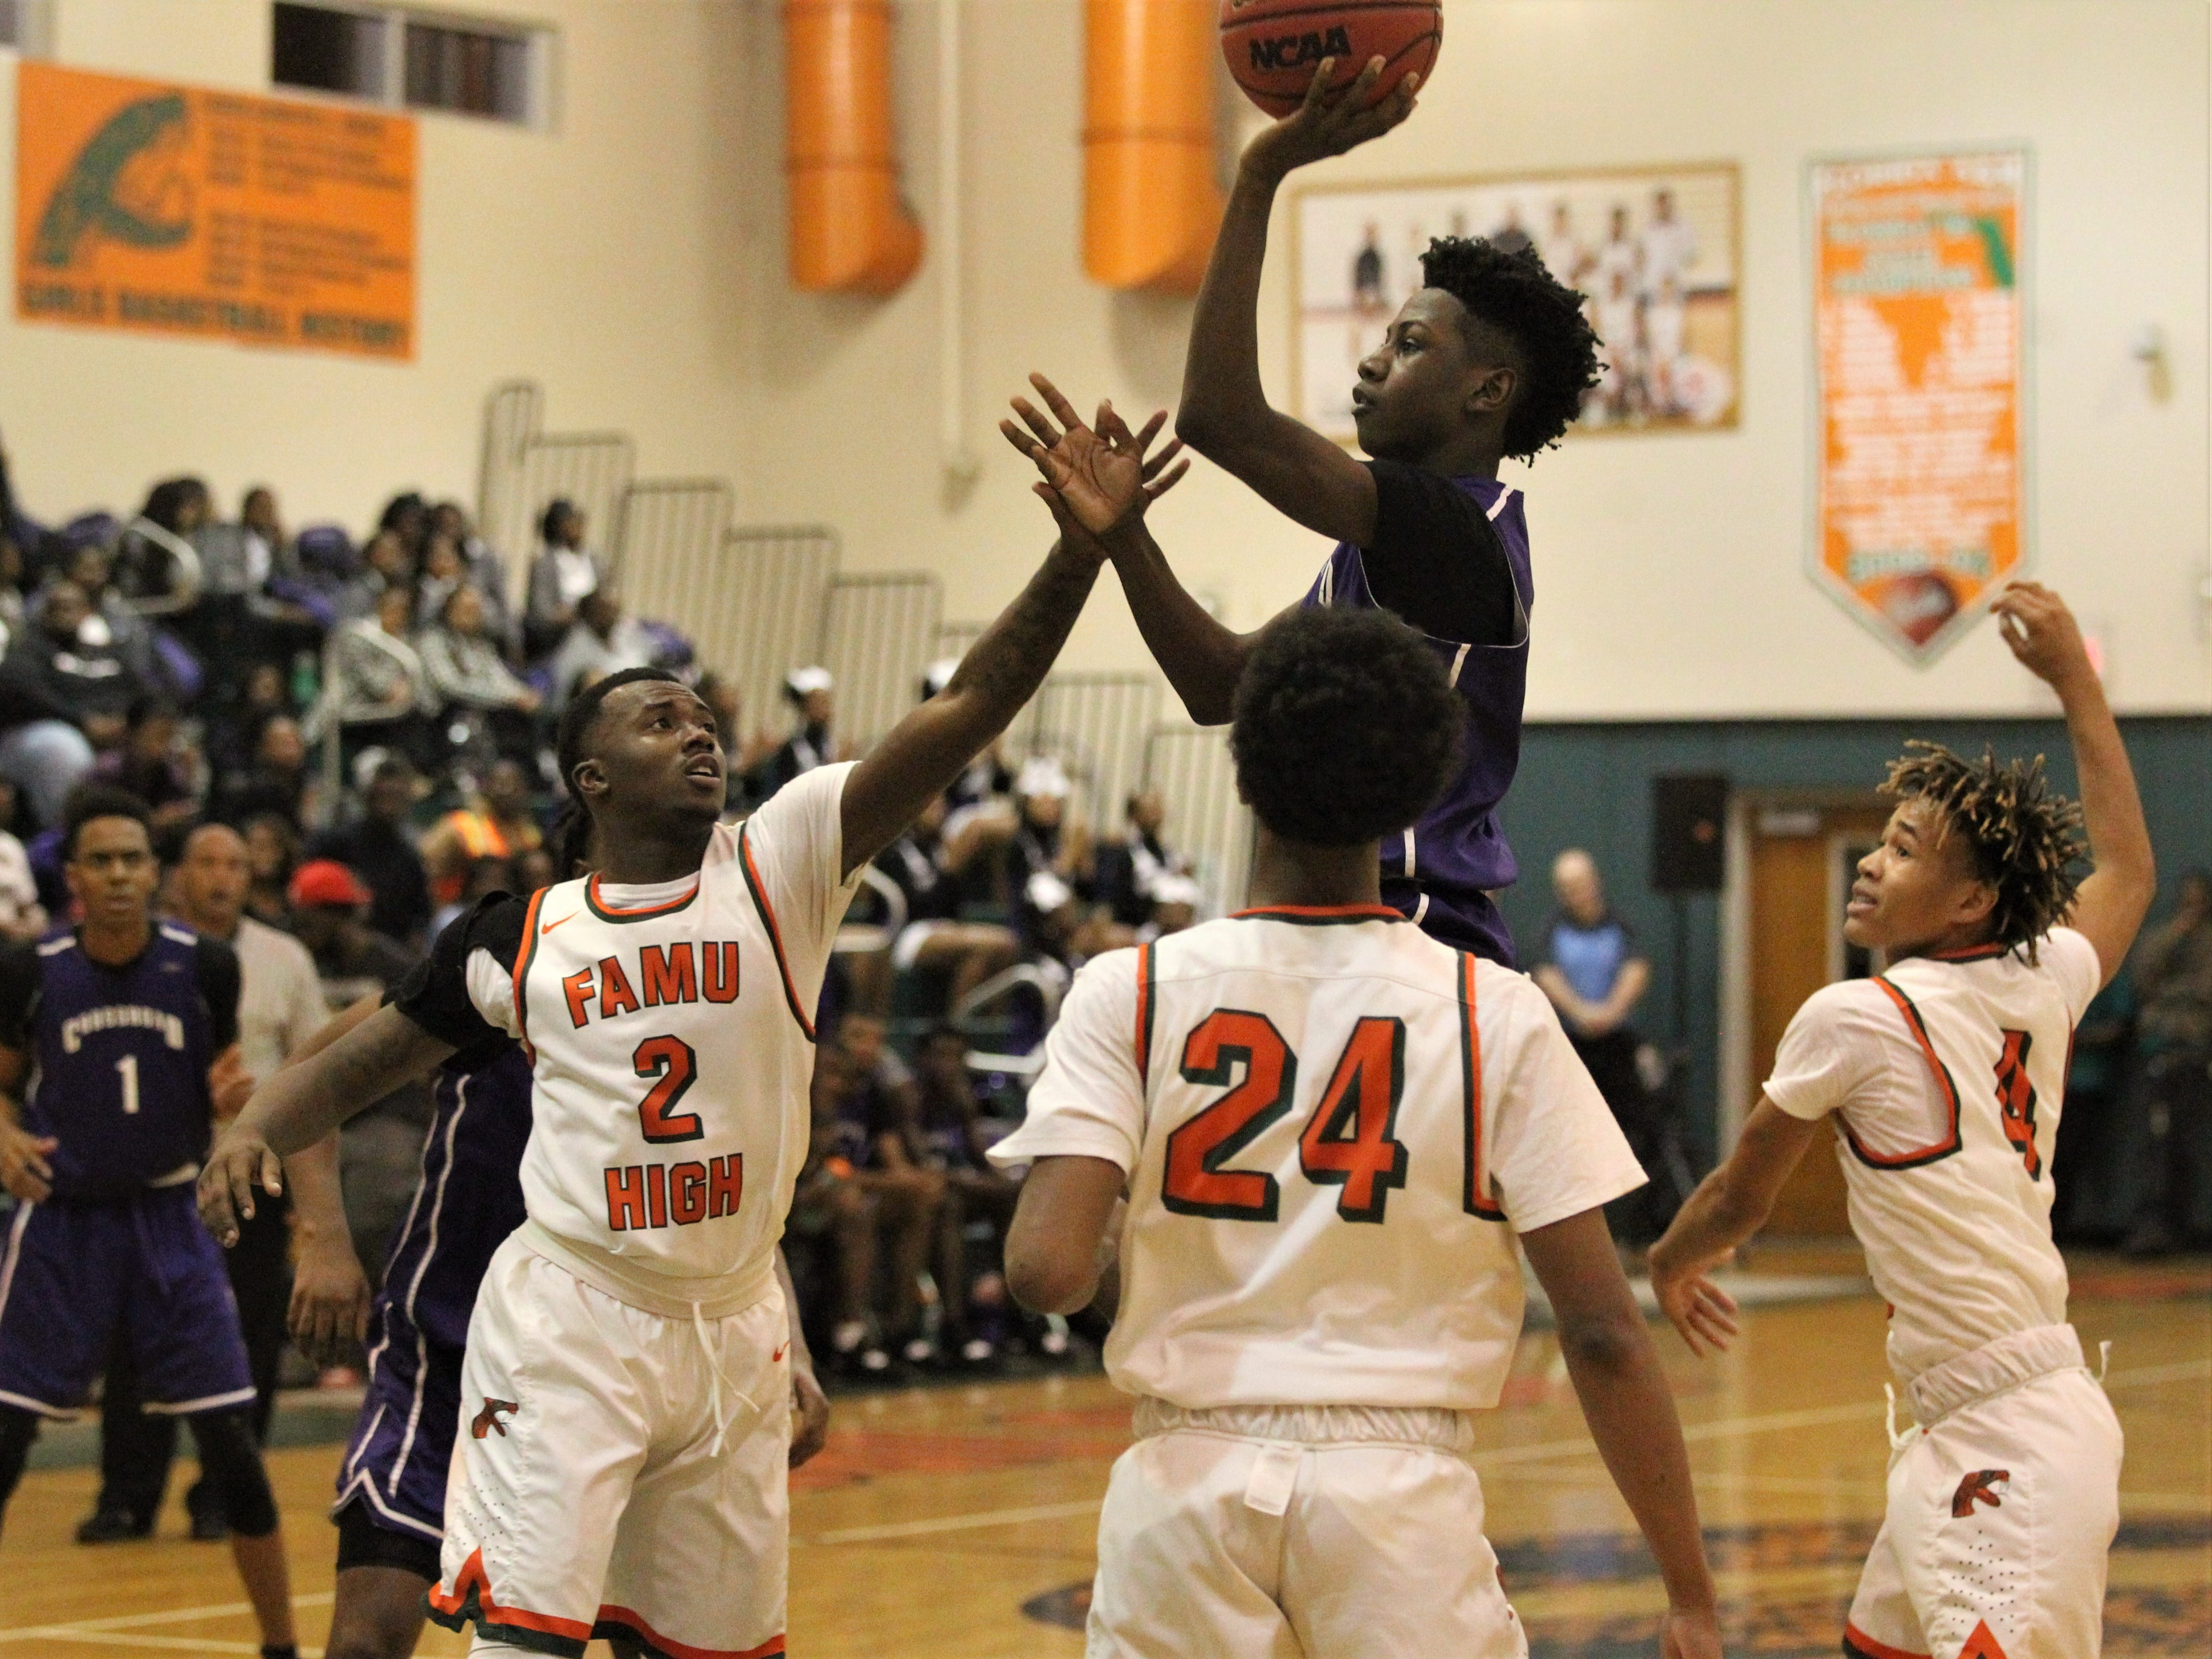 Deonta Jones goes for a floater in traffic as Crossroad Academy's boys basketball team plays at FAMU DRS on Jan. 7, 2019.